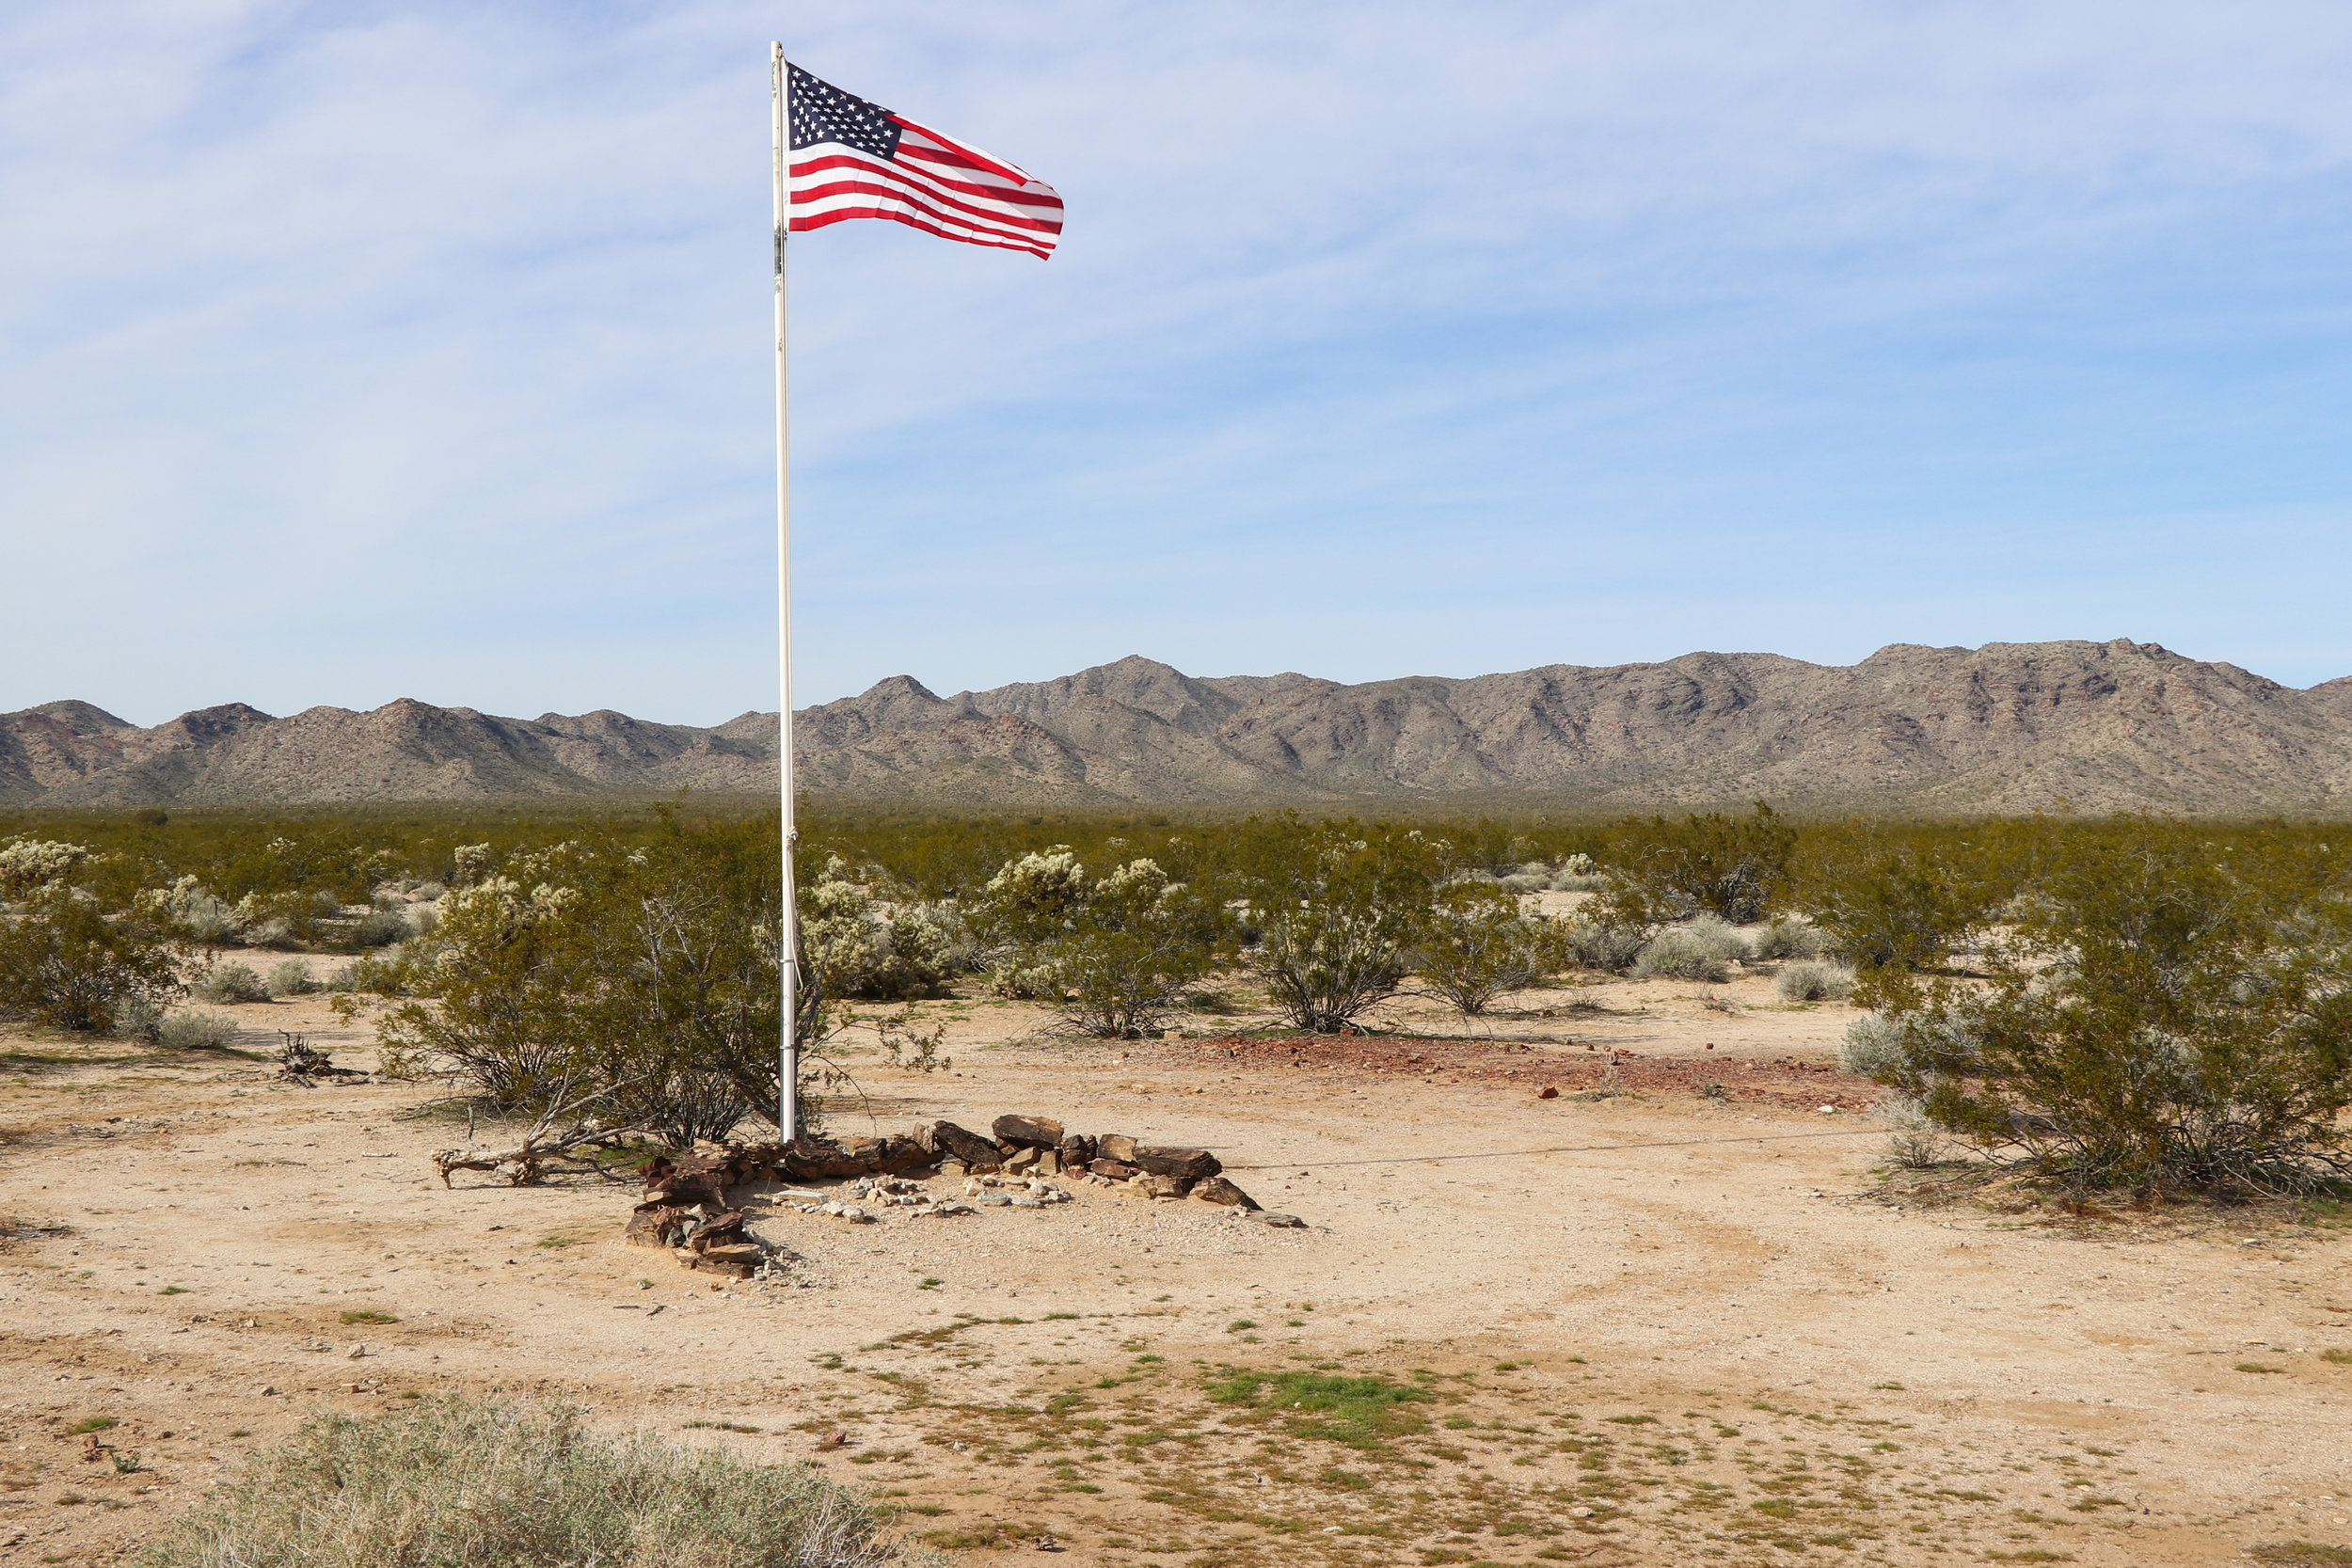 The flag remains above Camp Bouse.